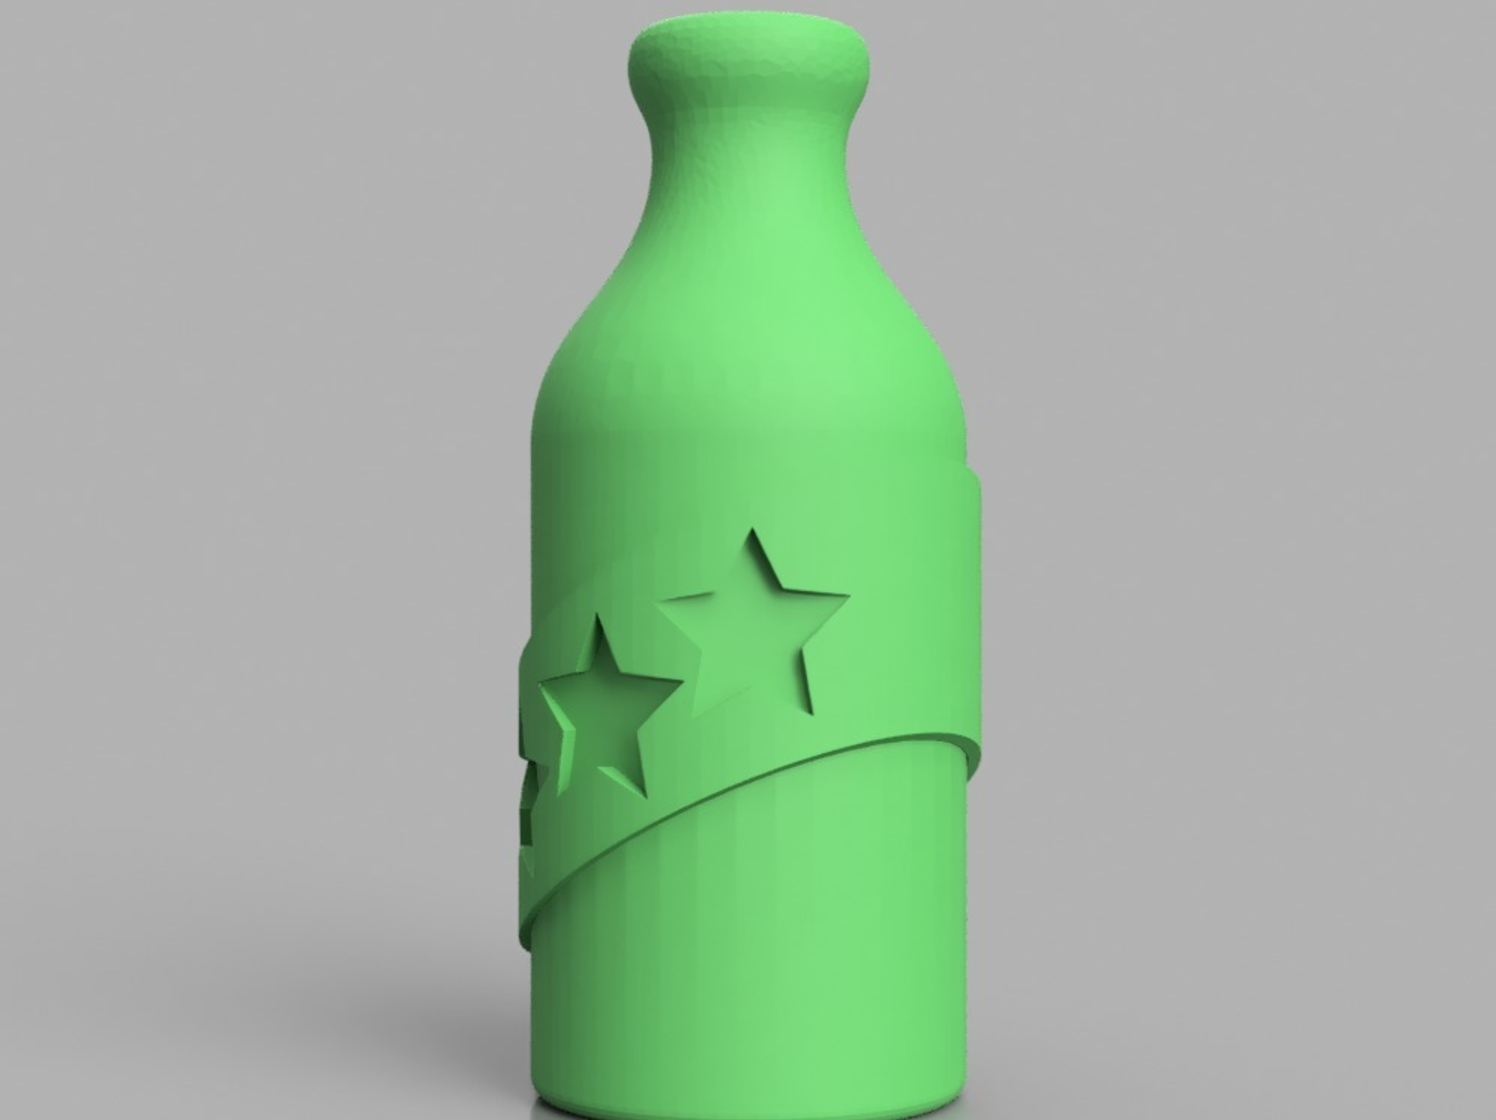 Capture d'écran 2017-06-09 à 09.28.58.png Download free STL file Booze Fighter Bottle and Badge • Model to 3D print, 3DPrintingGurus